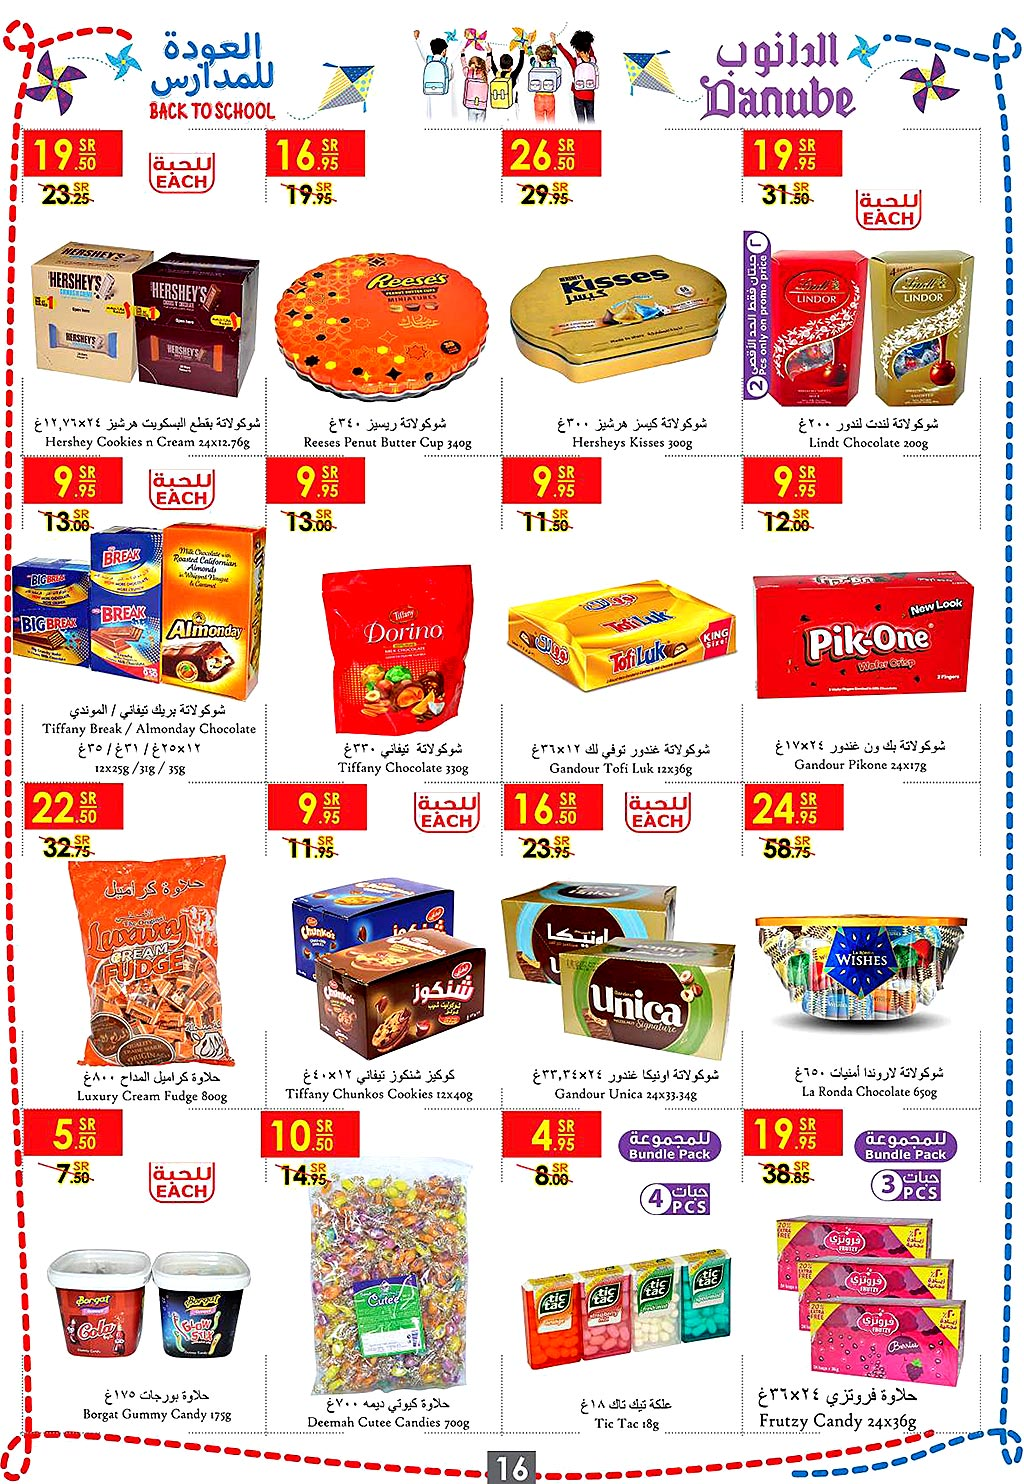 danube offers from 7aug to 21aug 2019 page number 15 عروض الدانوب من 7 أغسطس حتى 21 أغسطس 2019 صفحة رقم 15